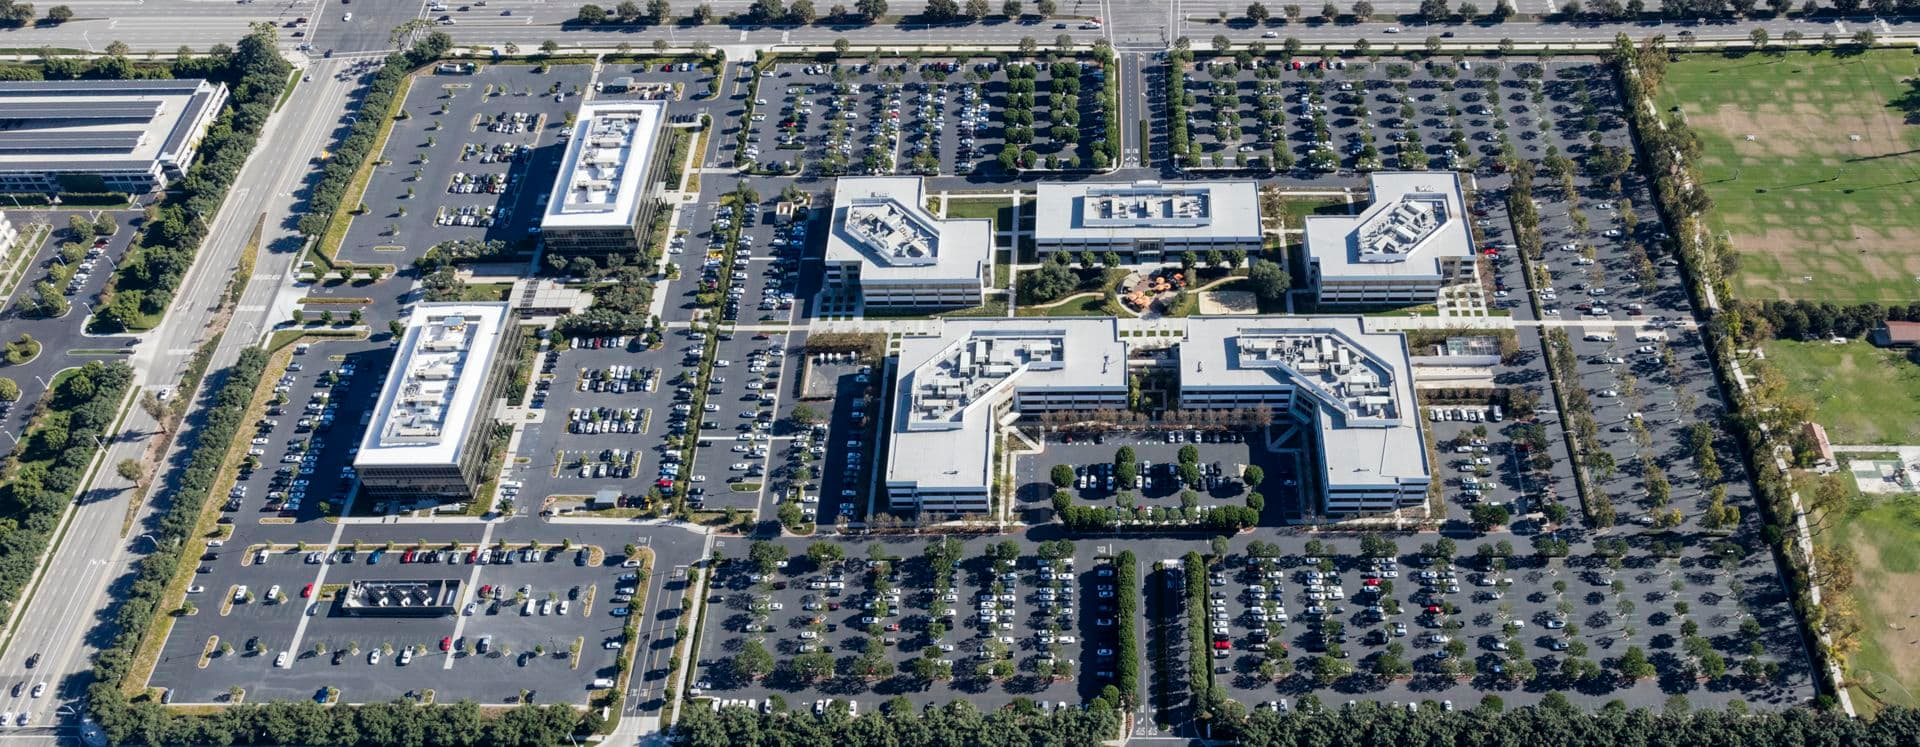 Aerial photography of Sand Canyon Business Center in Irvine, CA